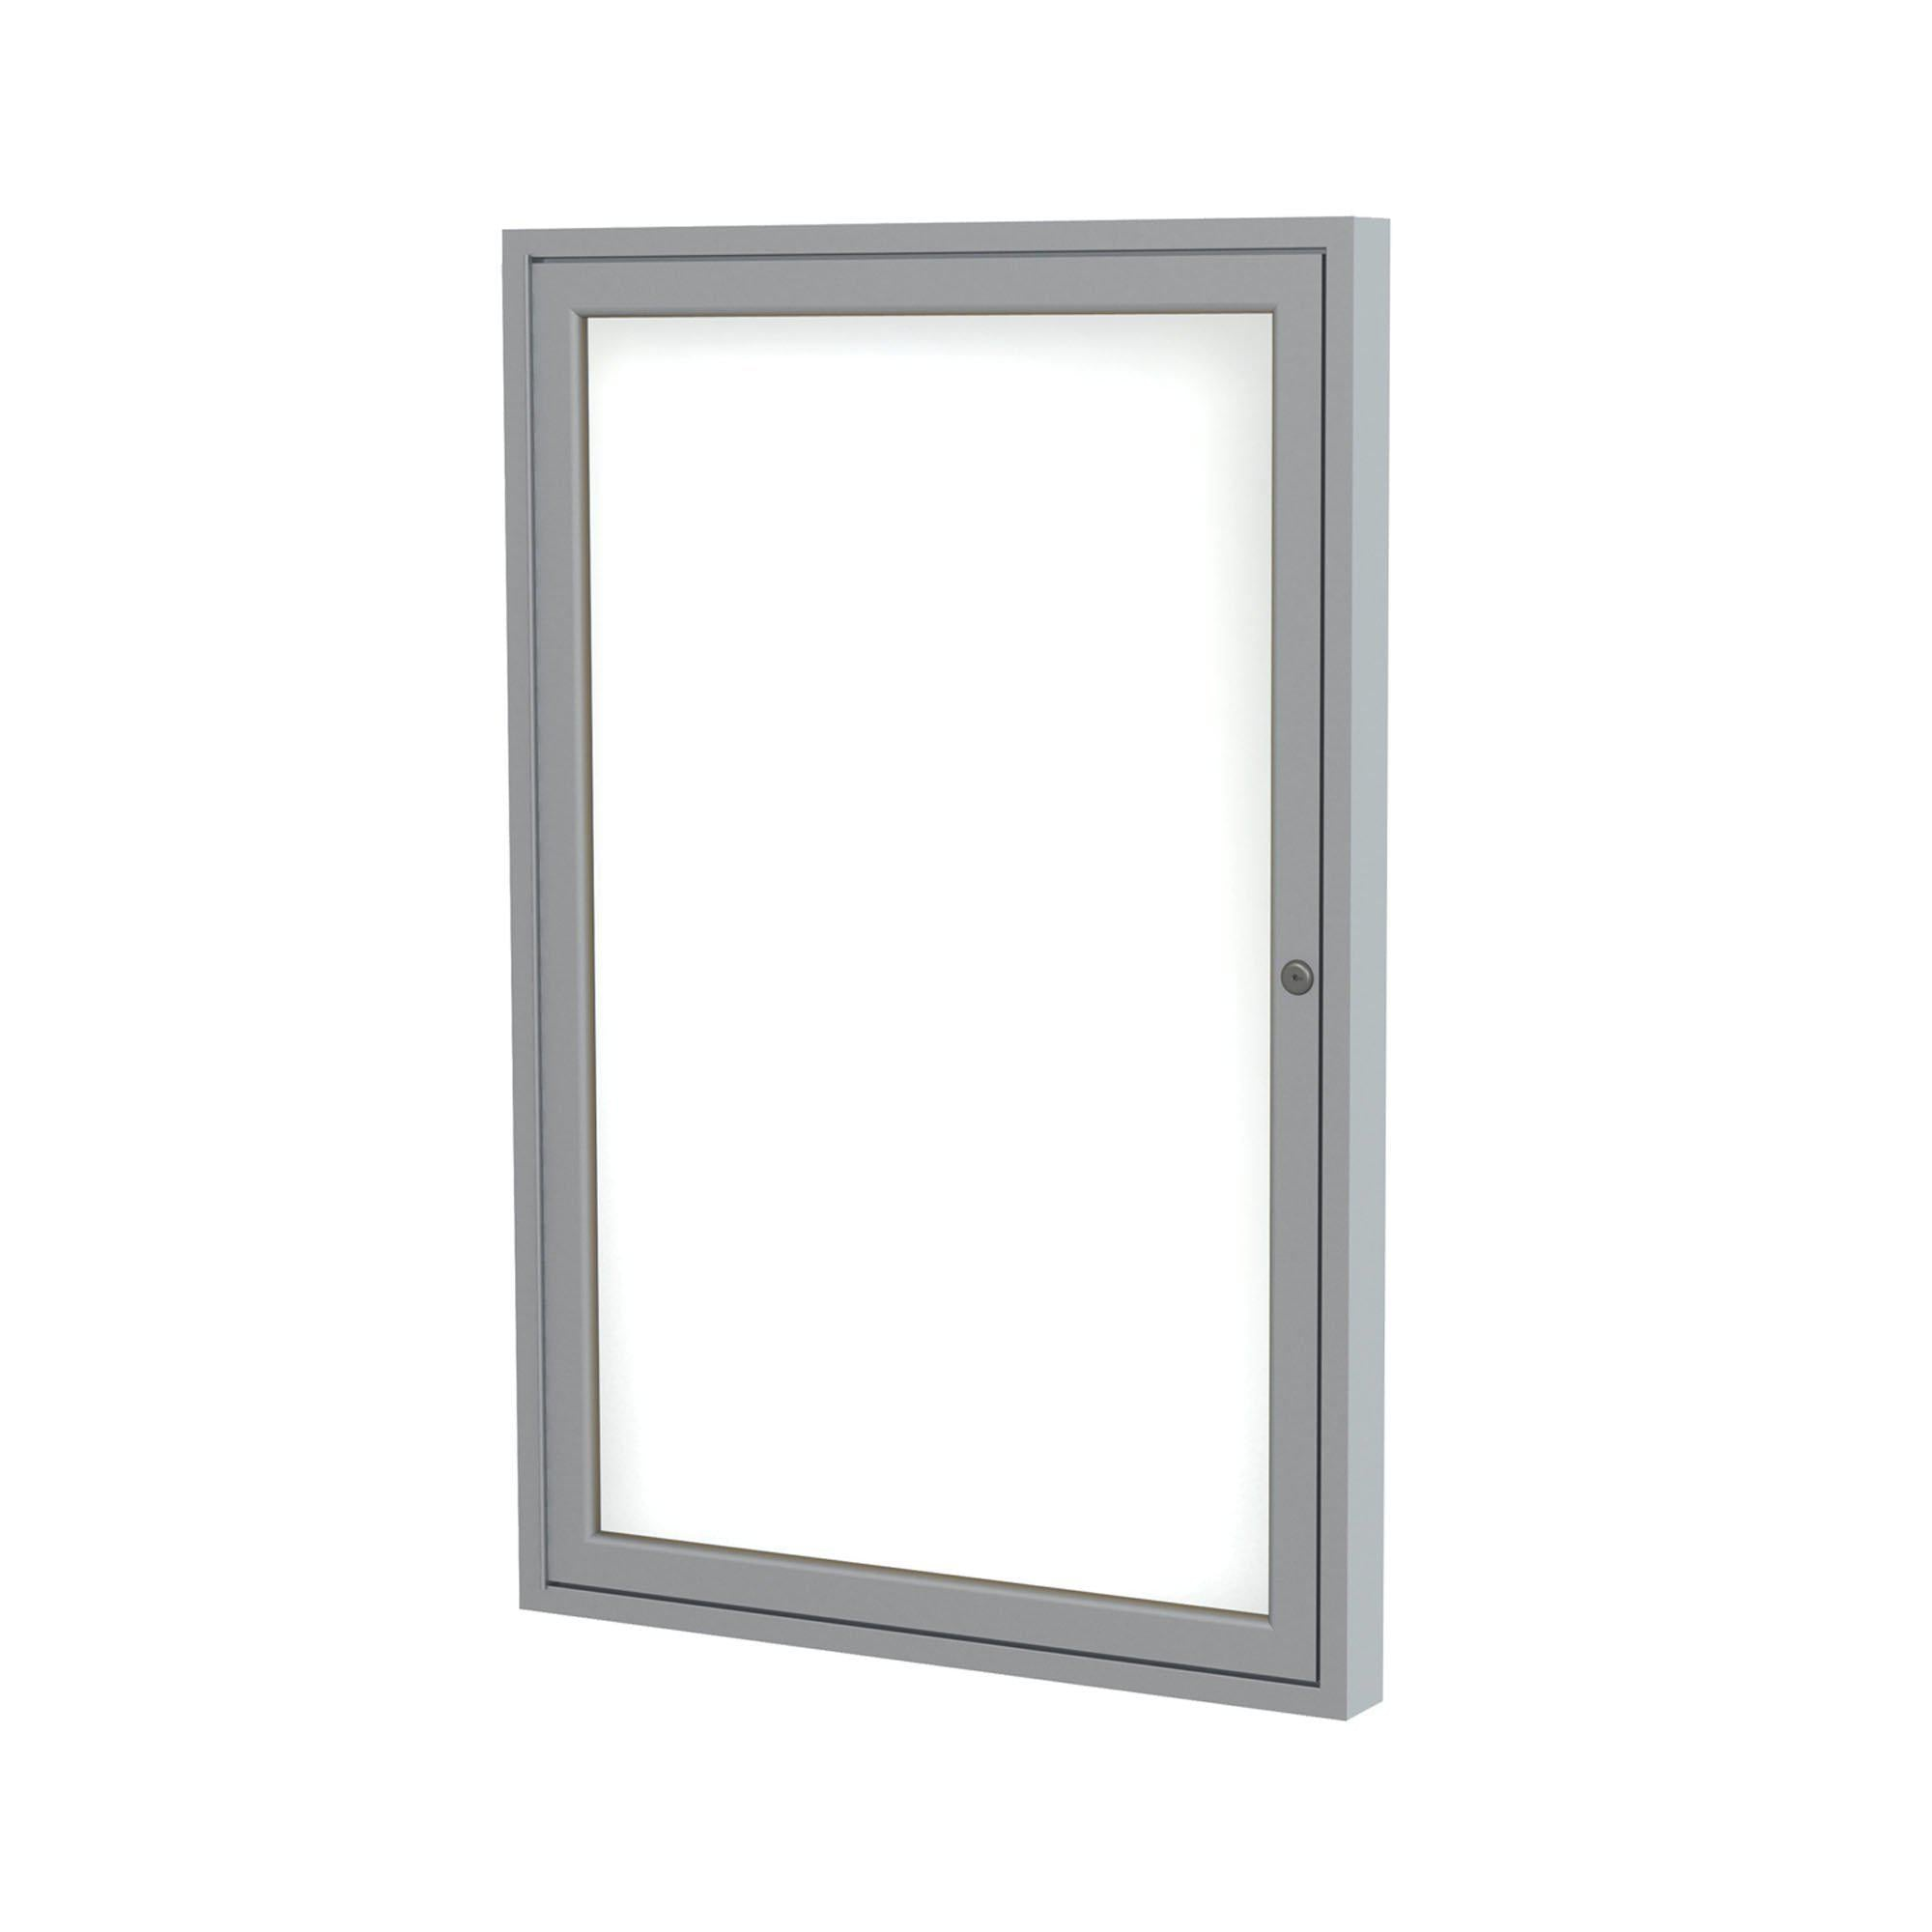 Enclosed Porcelain Magnetic Whiteboard with Satin Aluminum Frame